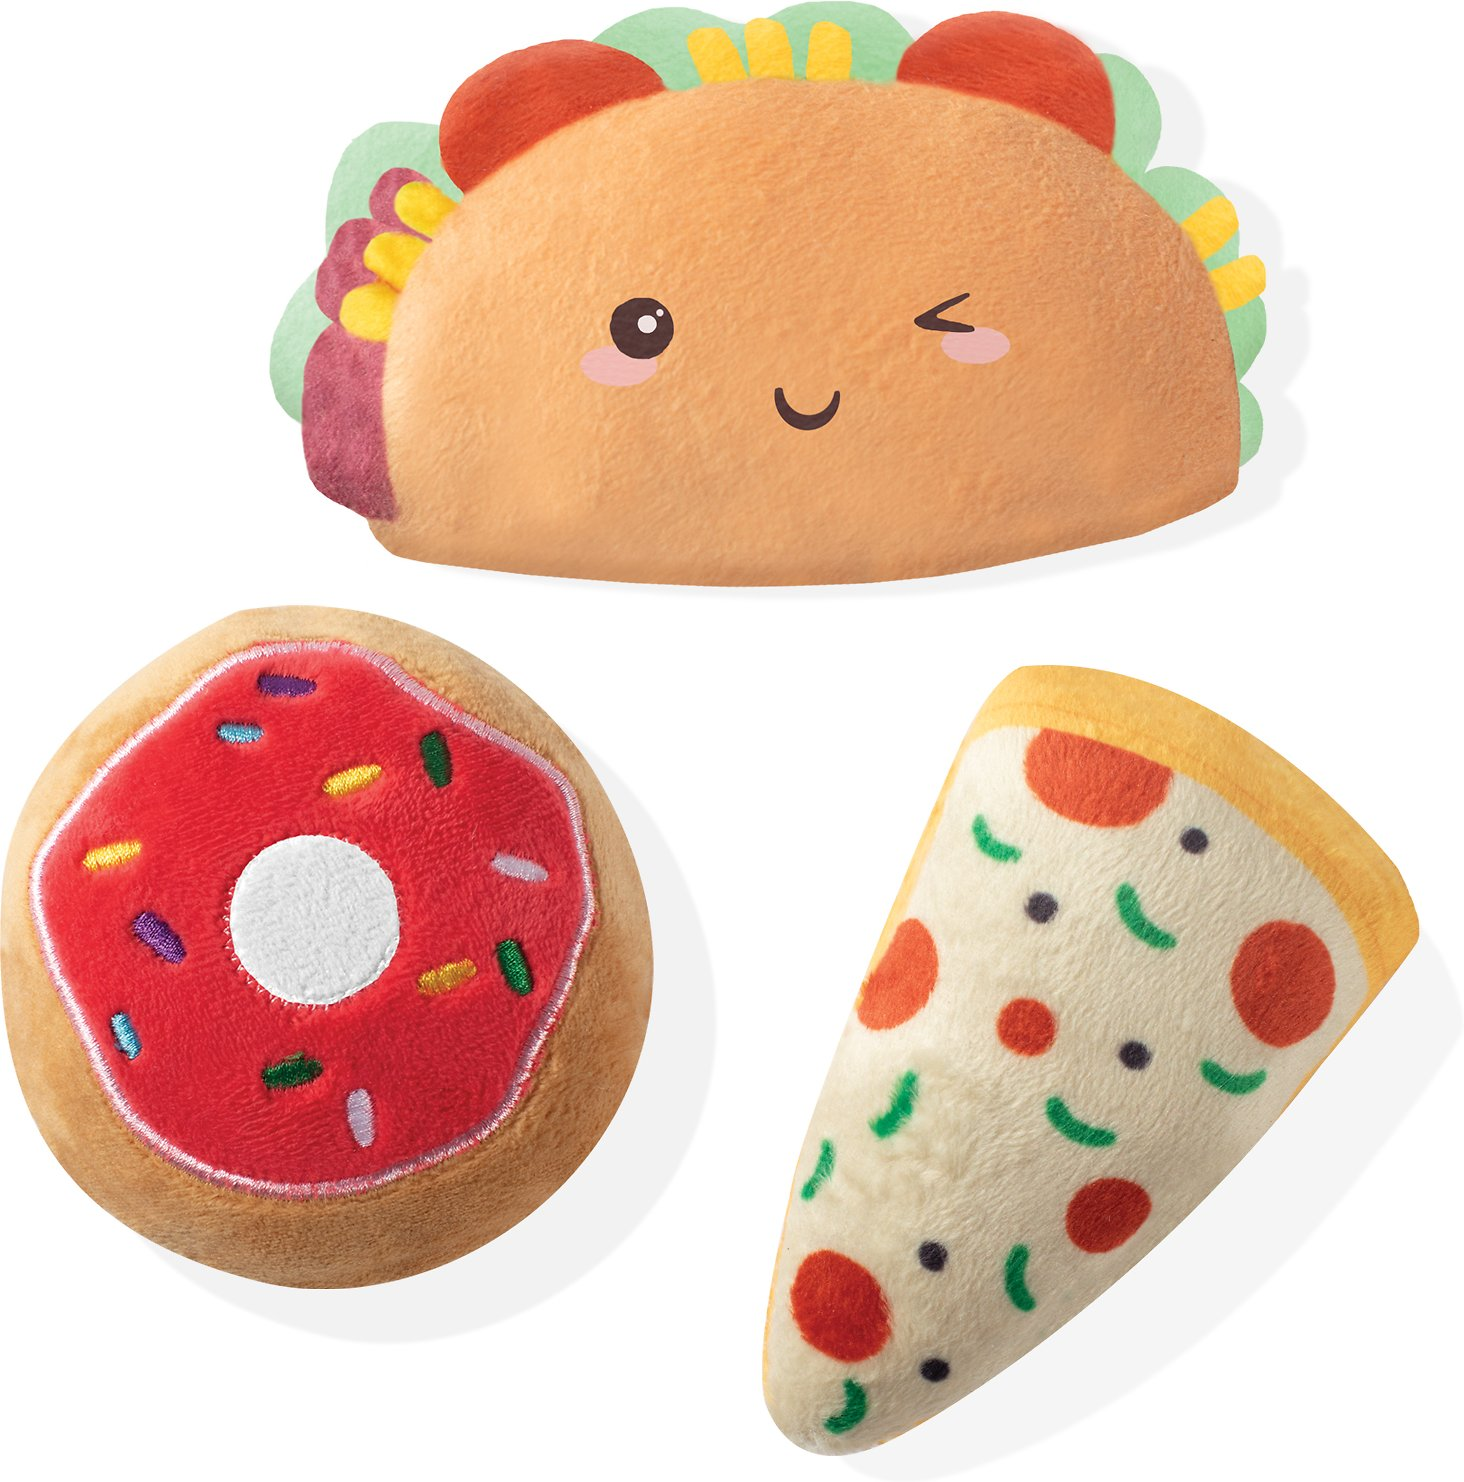 Pet Shop by Fringe Studio Feasting My Eyes on You Food Mini Dog Toys, 3-count